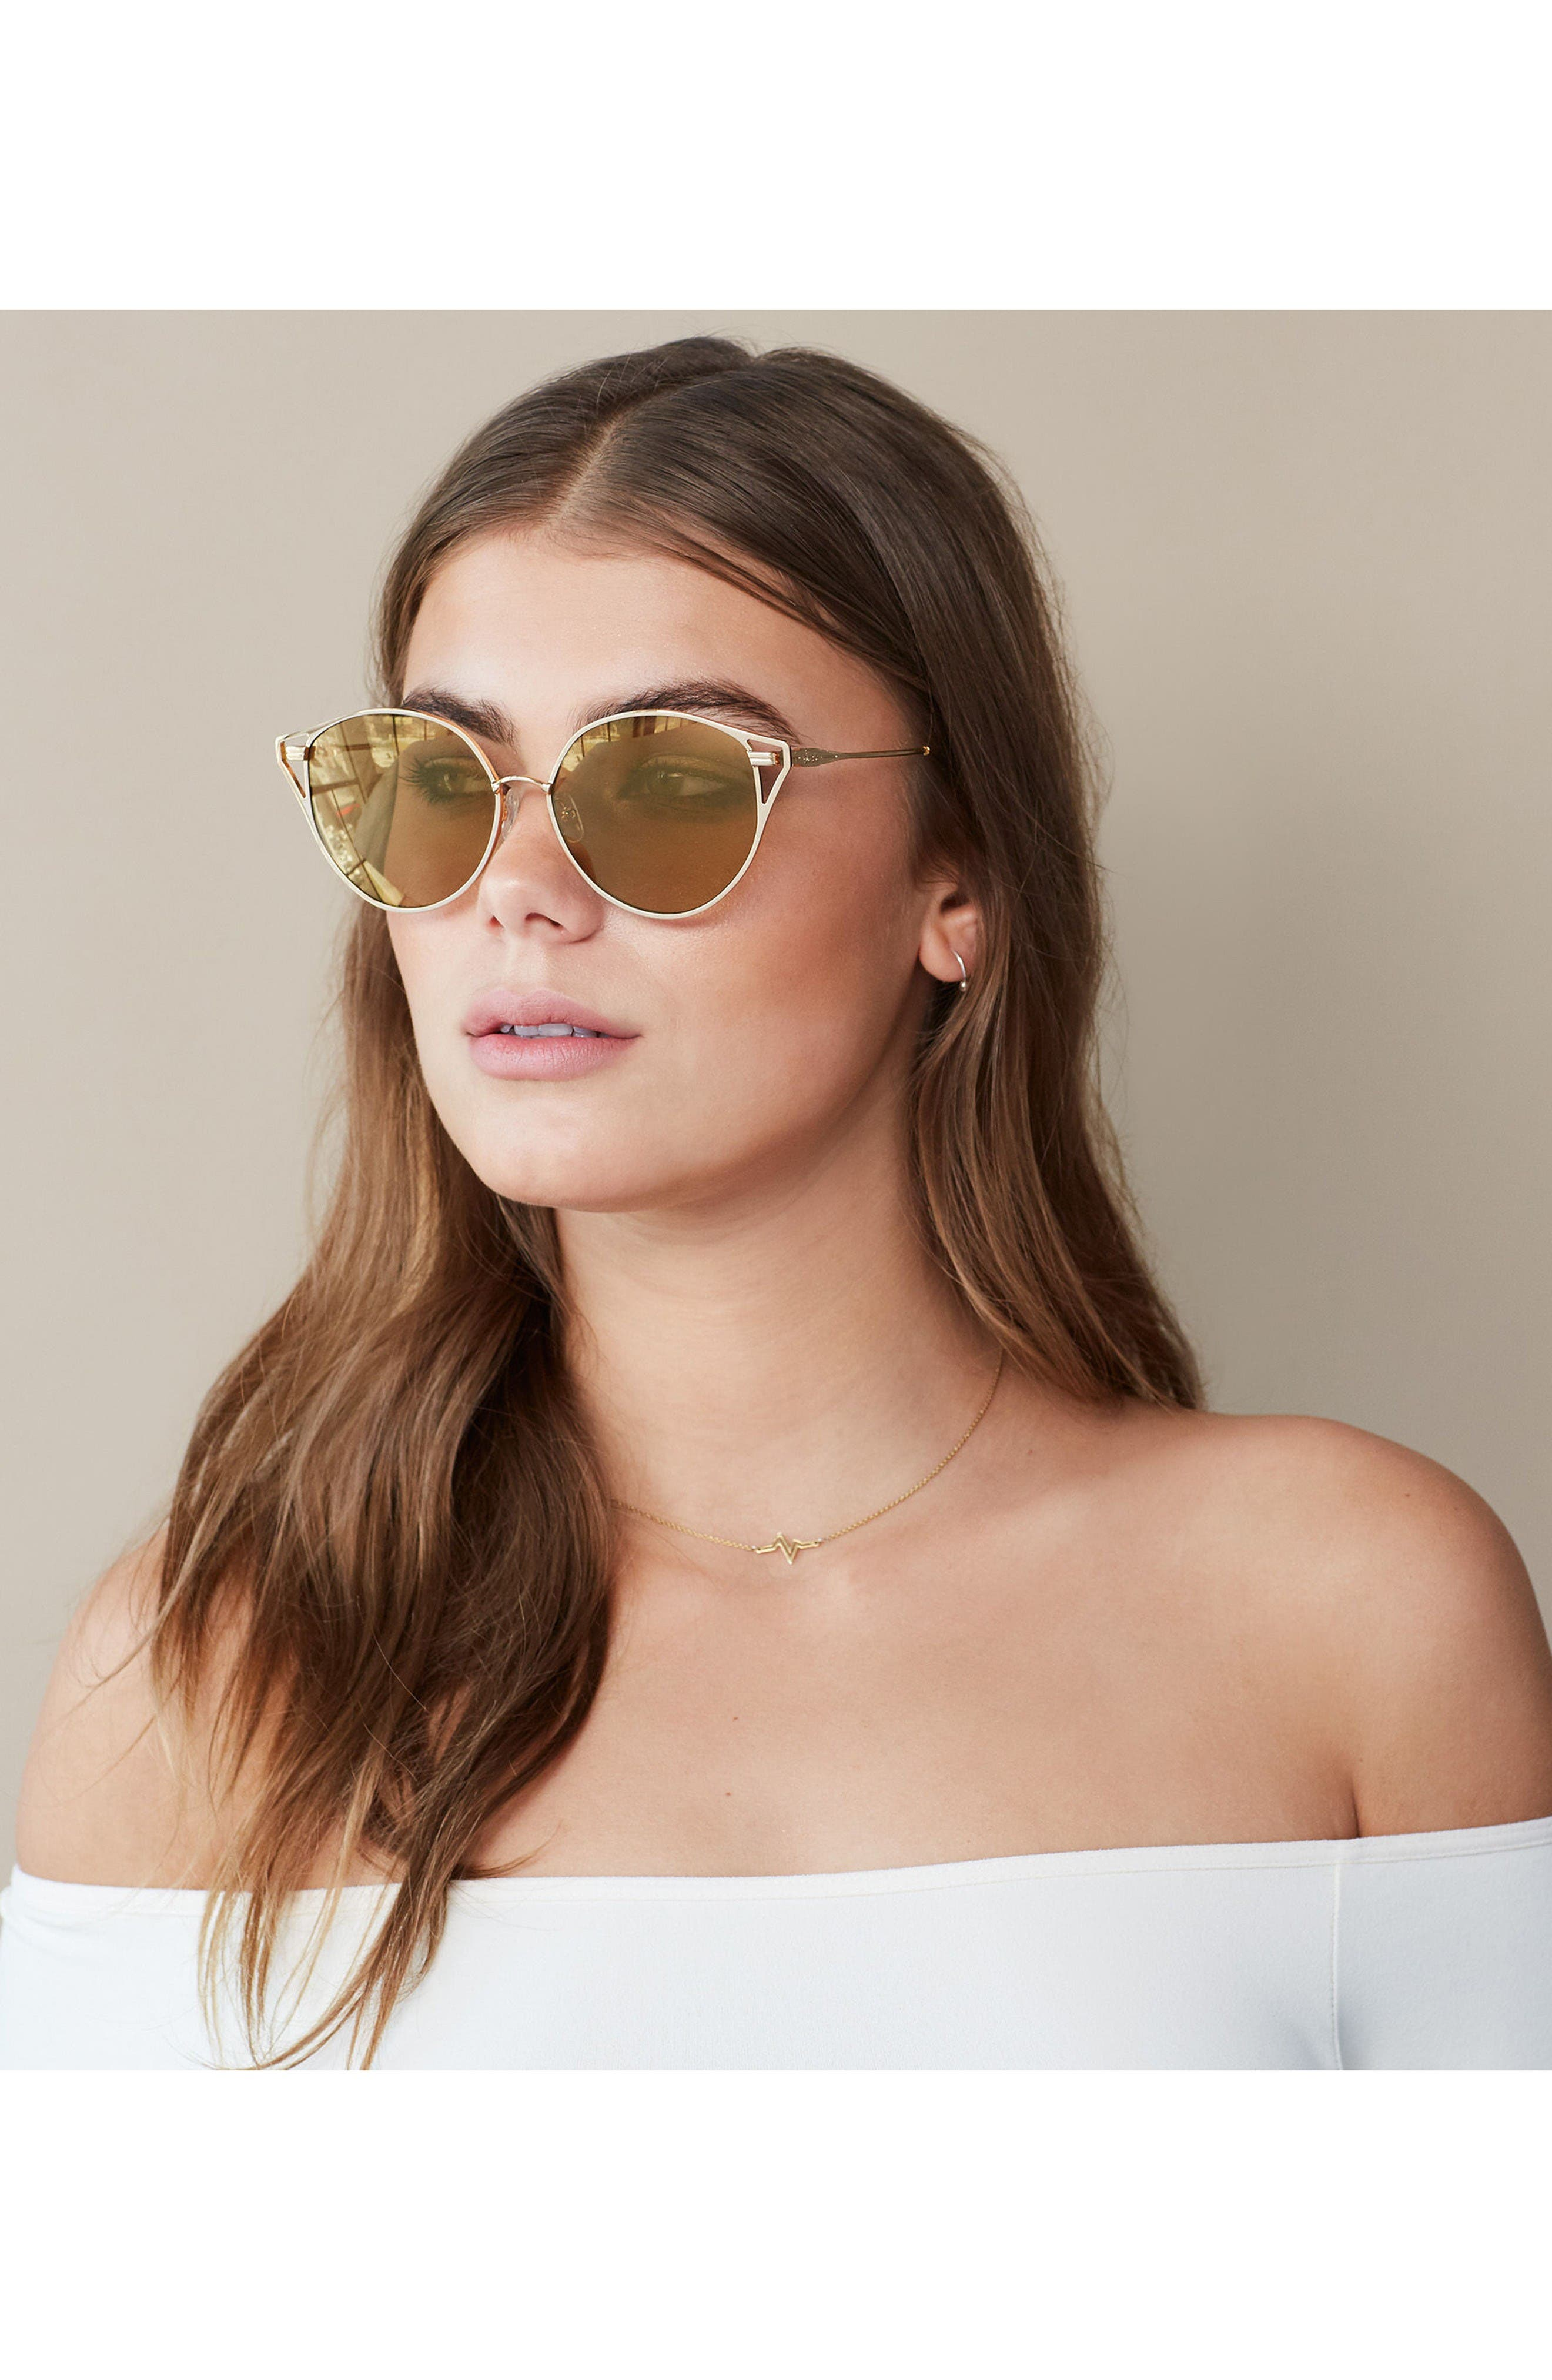 Ibiza 55mm Cat Eye Sunglasses,                             Alternate thumbnail 3, color,                             Gold Wire/ Amber Mirror